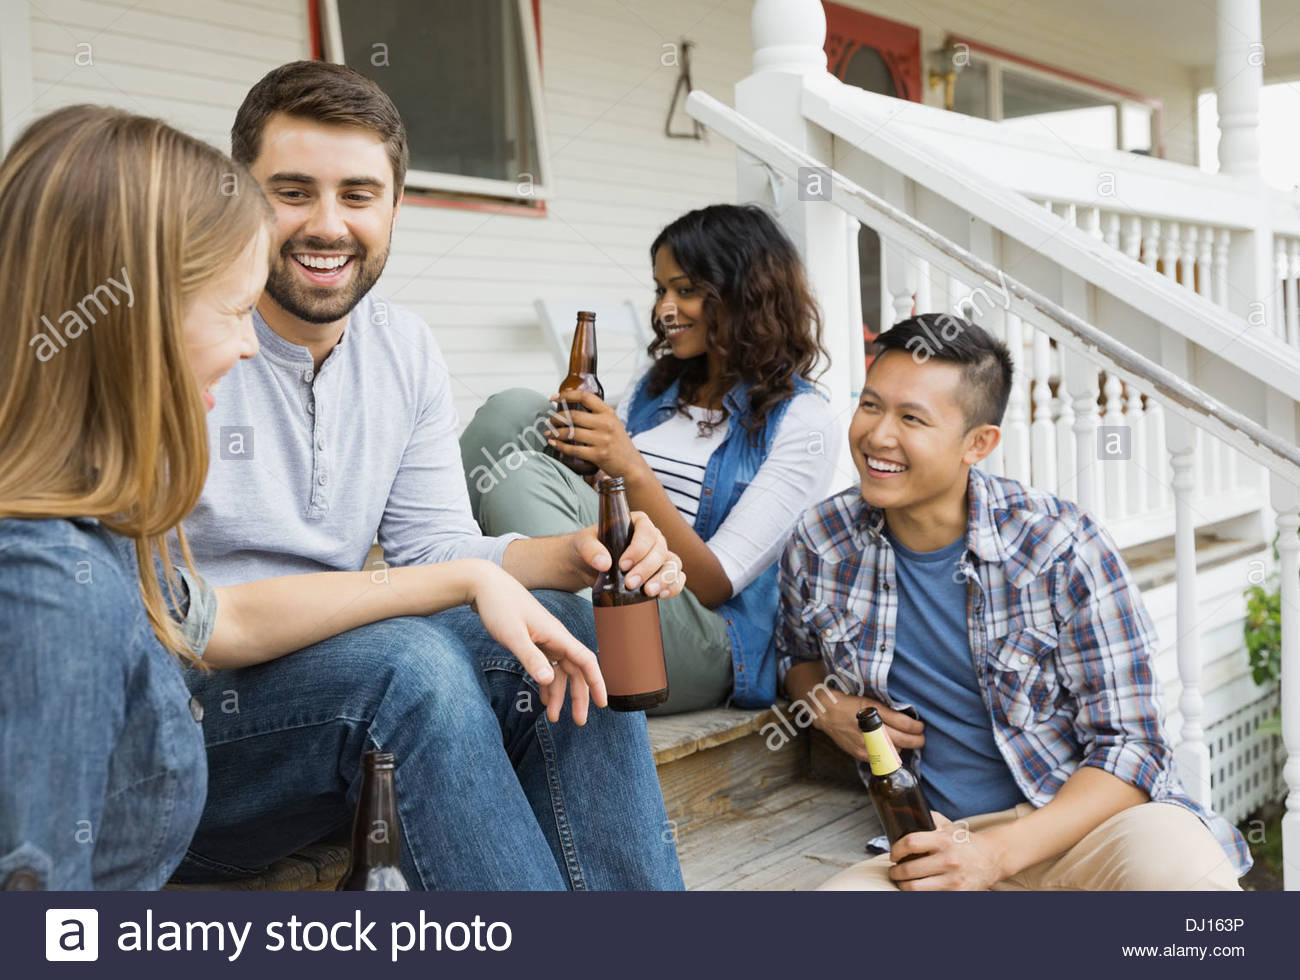 Group of friends enjoying drinks on porch - Stock Image